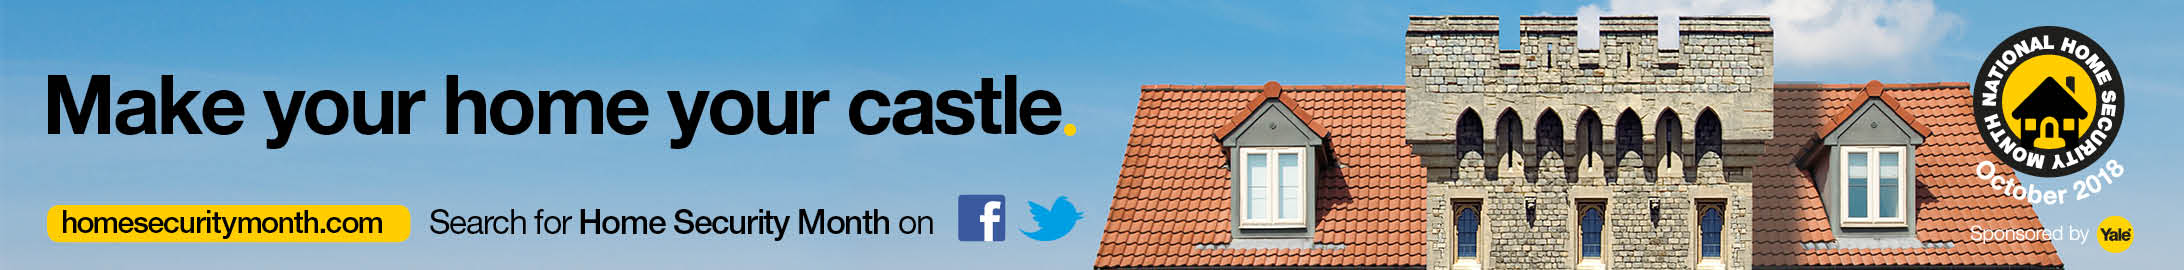 National Home Security Month - Make your home your castle